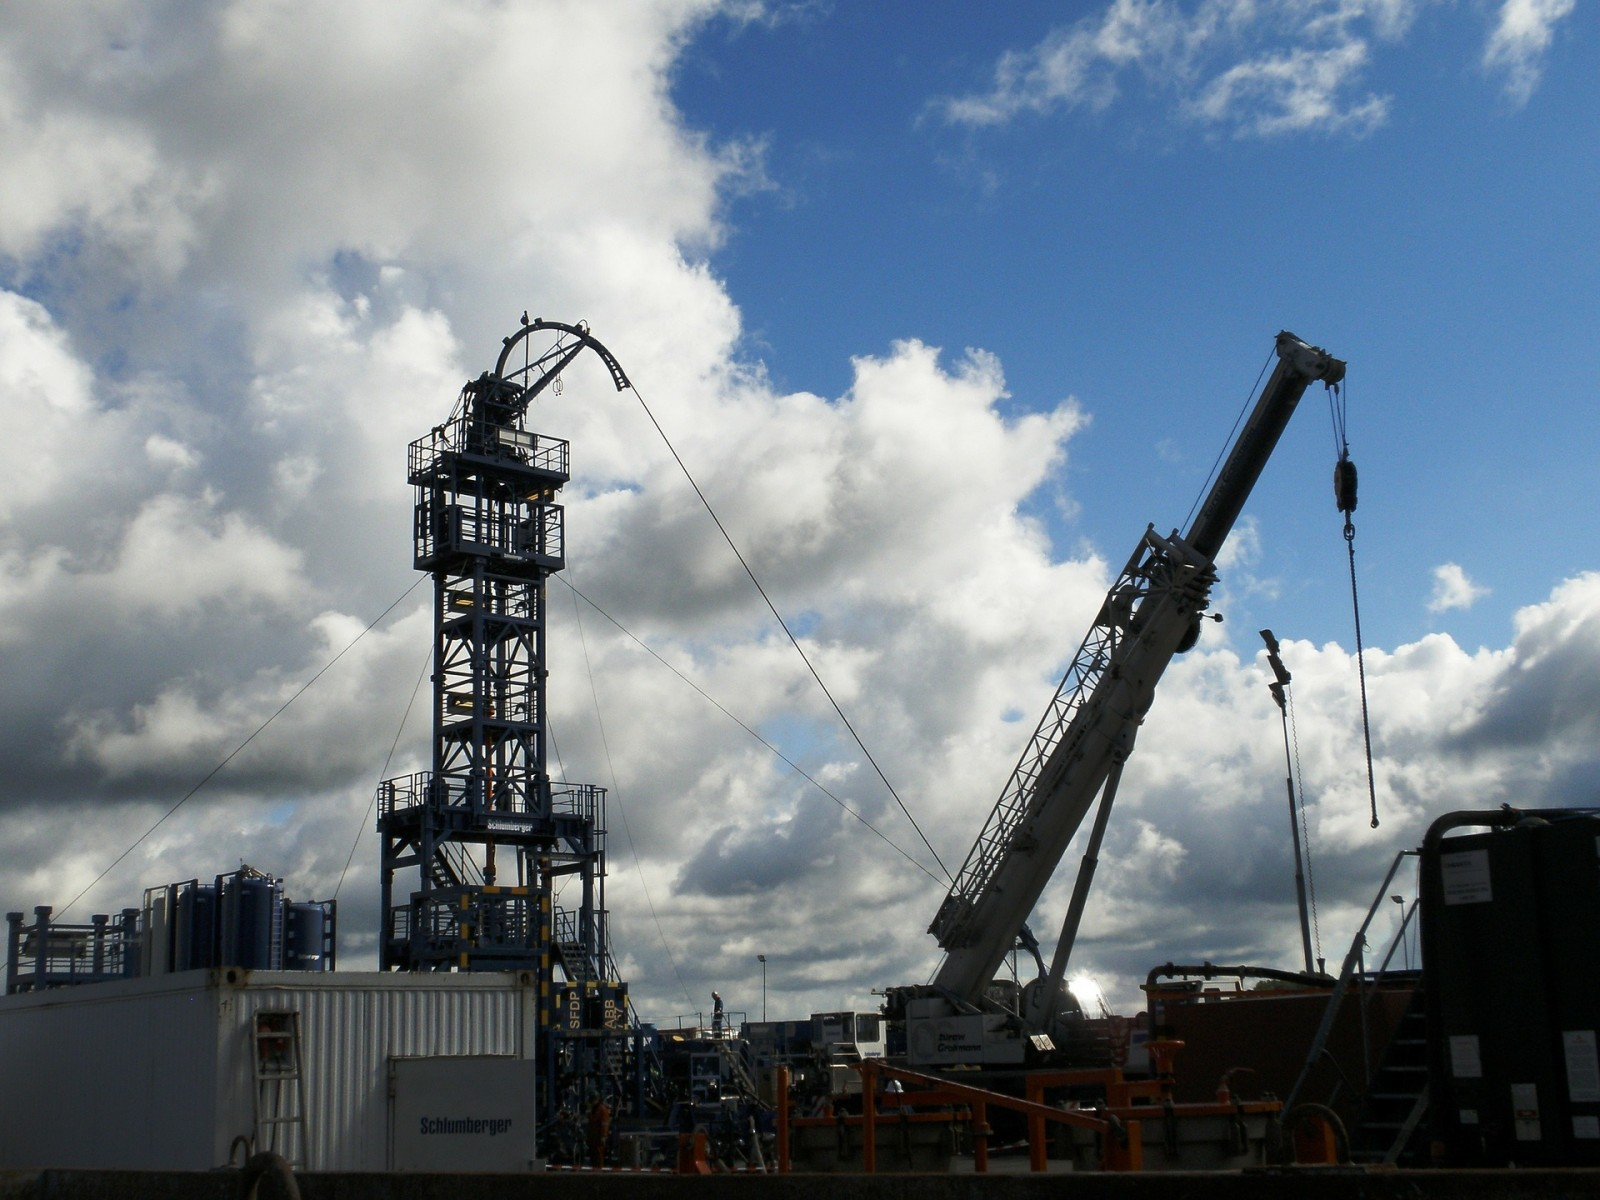 Fracking at Shale Gas plant